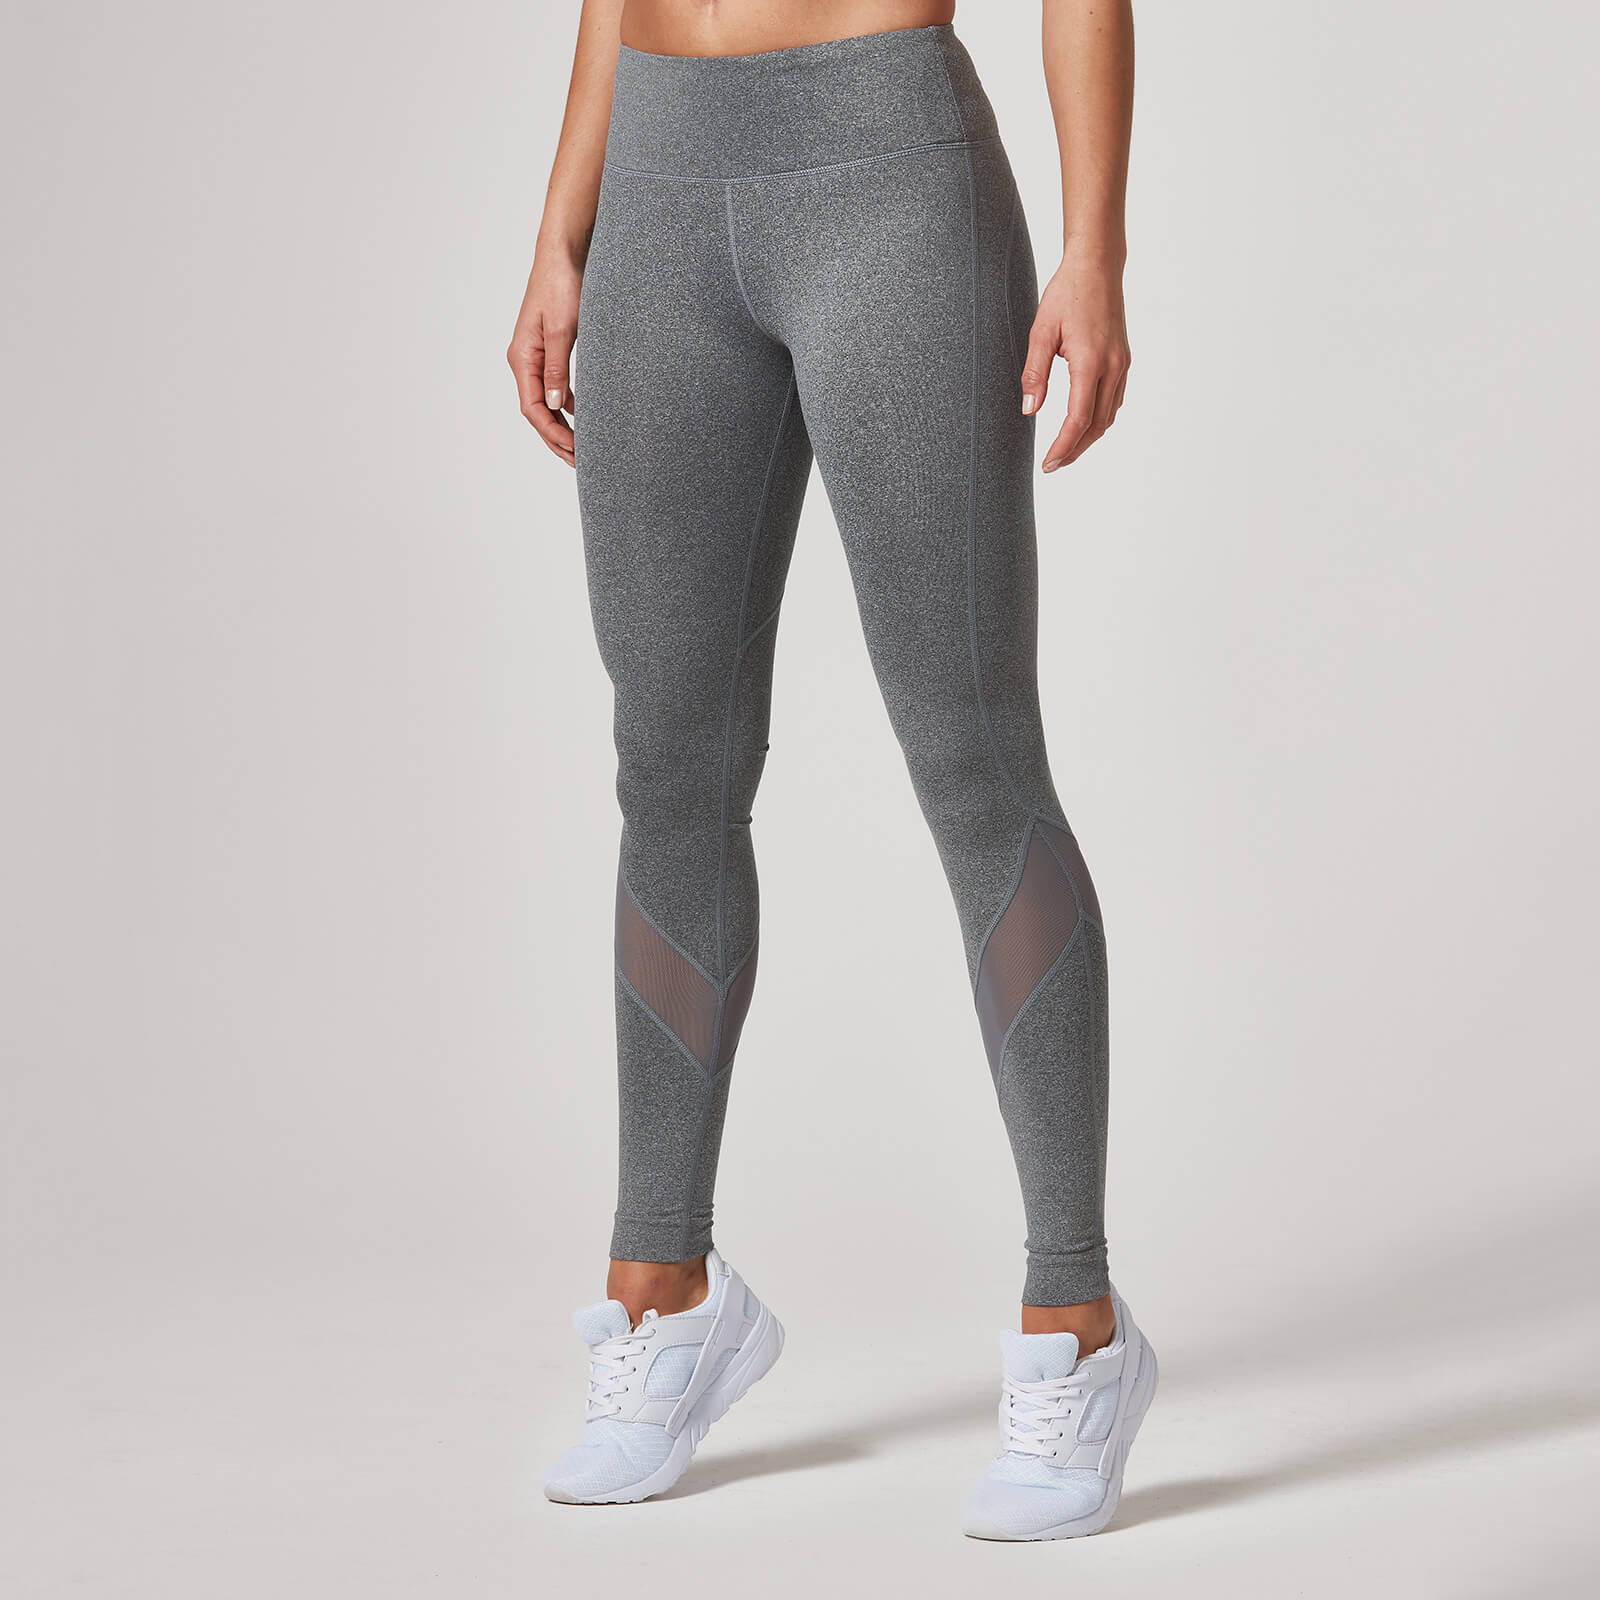 Myprotein Heartbeat Full-Length Leggings - Grey, XS